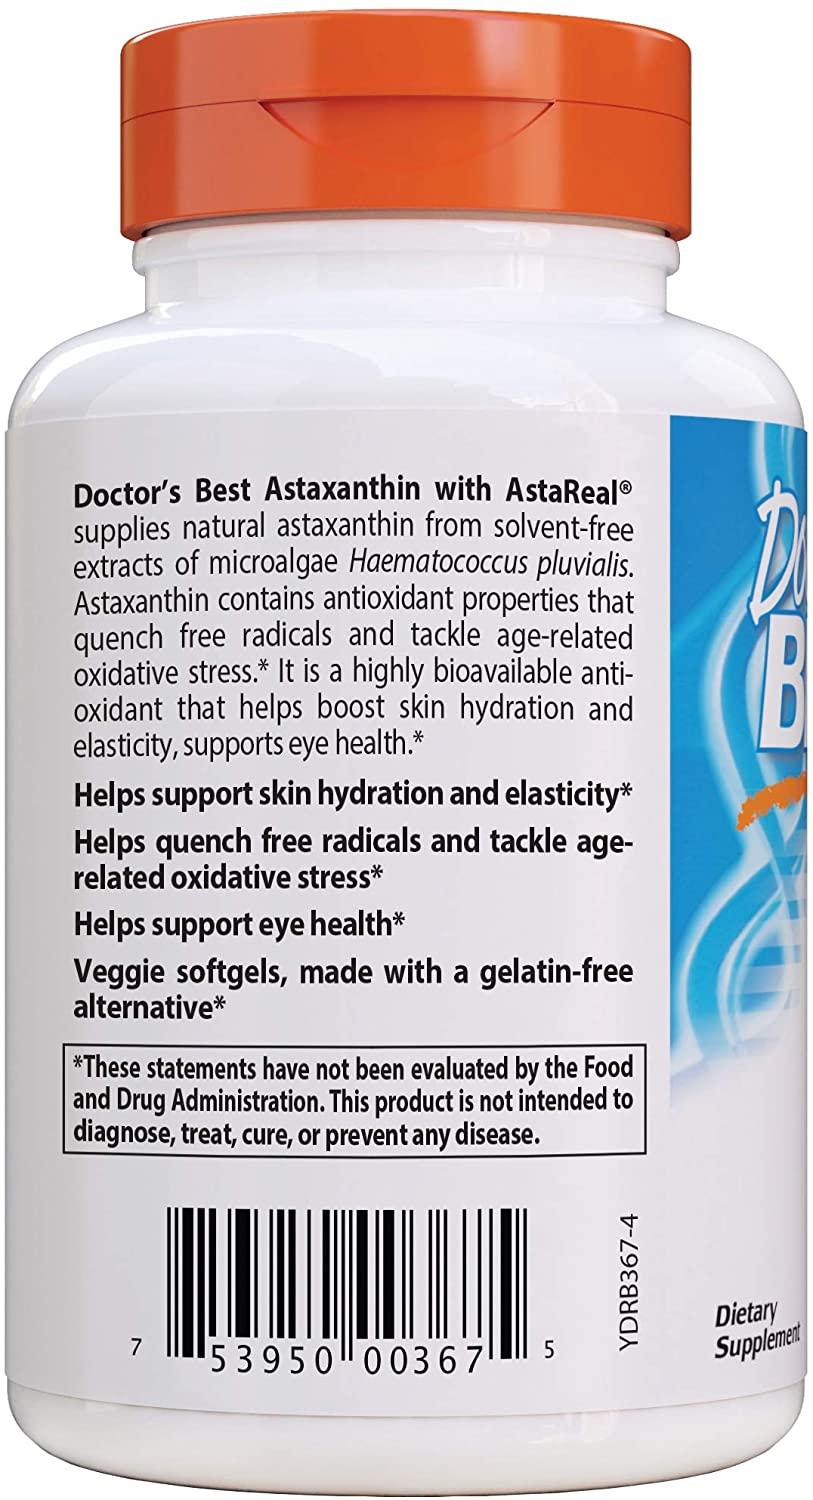 Астаксантин с AstaReal, Doctor's Best, Astaxanthin with AstaReal, 6 мг, 90 капсул